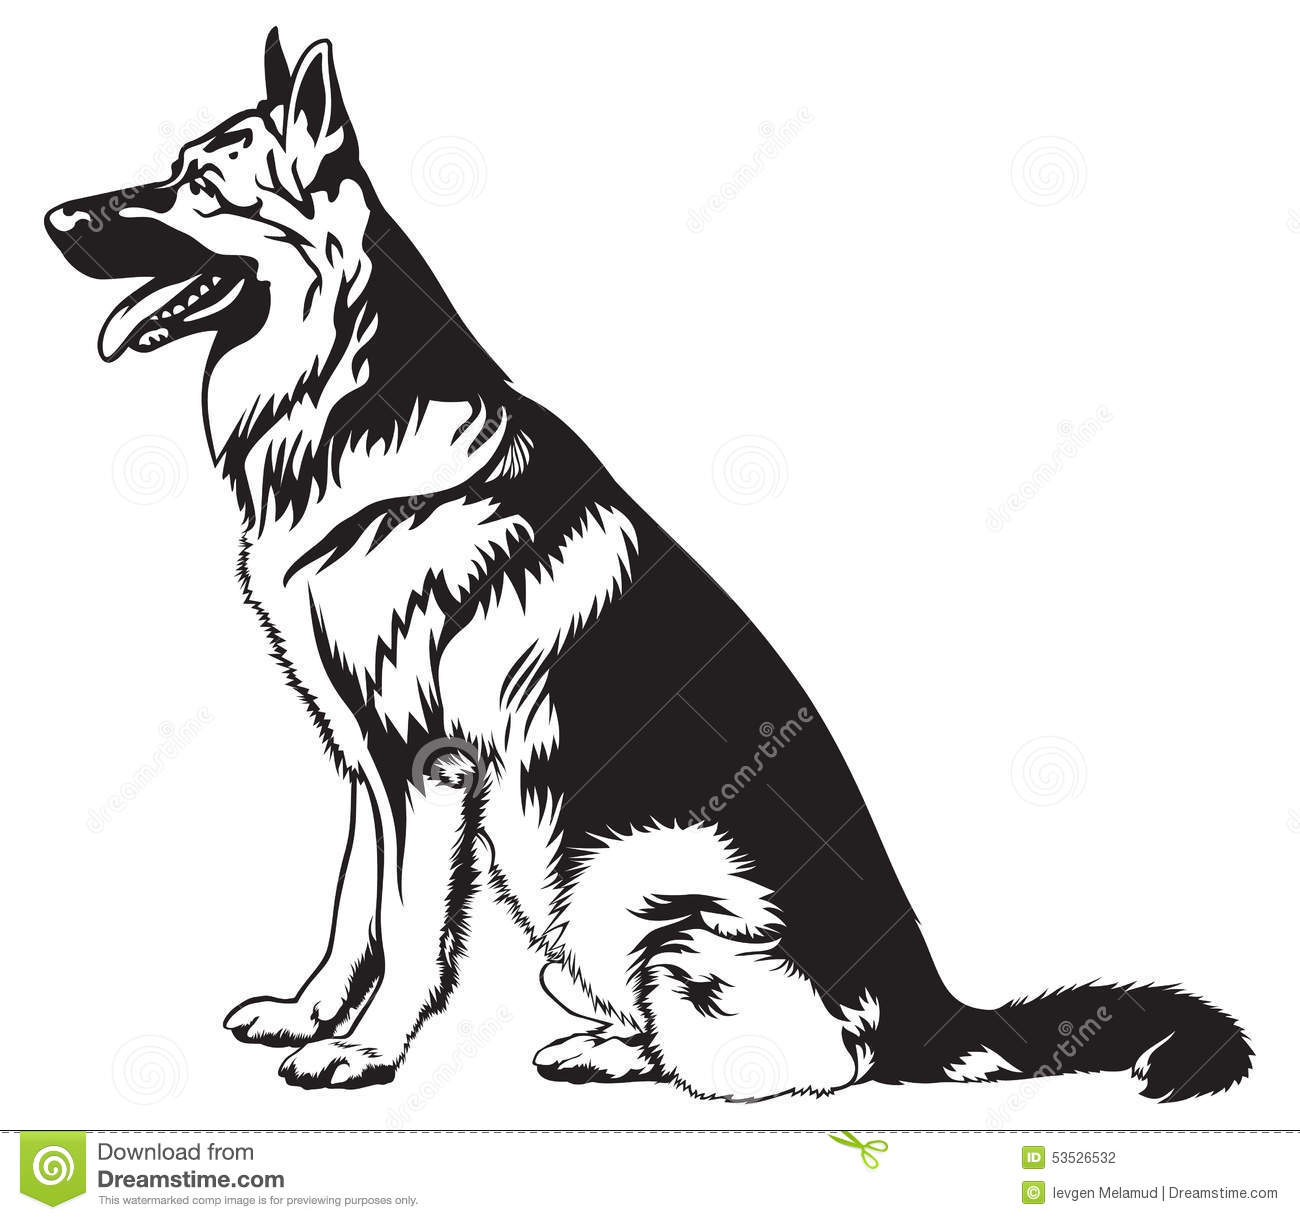 2020 Other | Images: Sitting German Shepherd Clipart